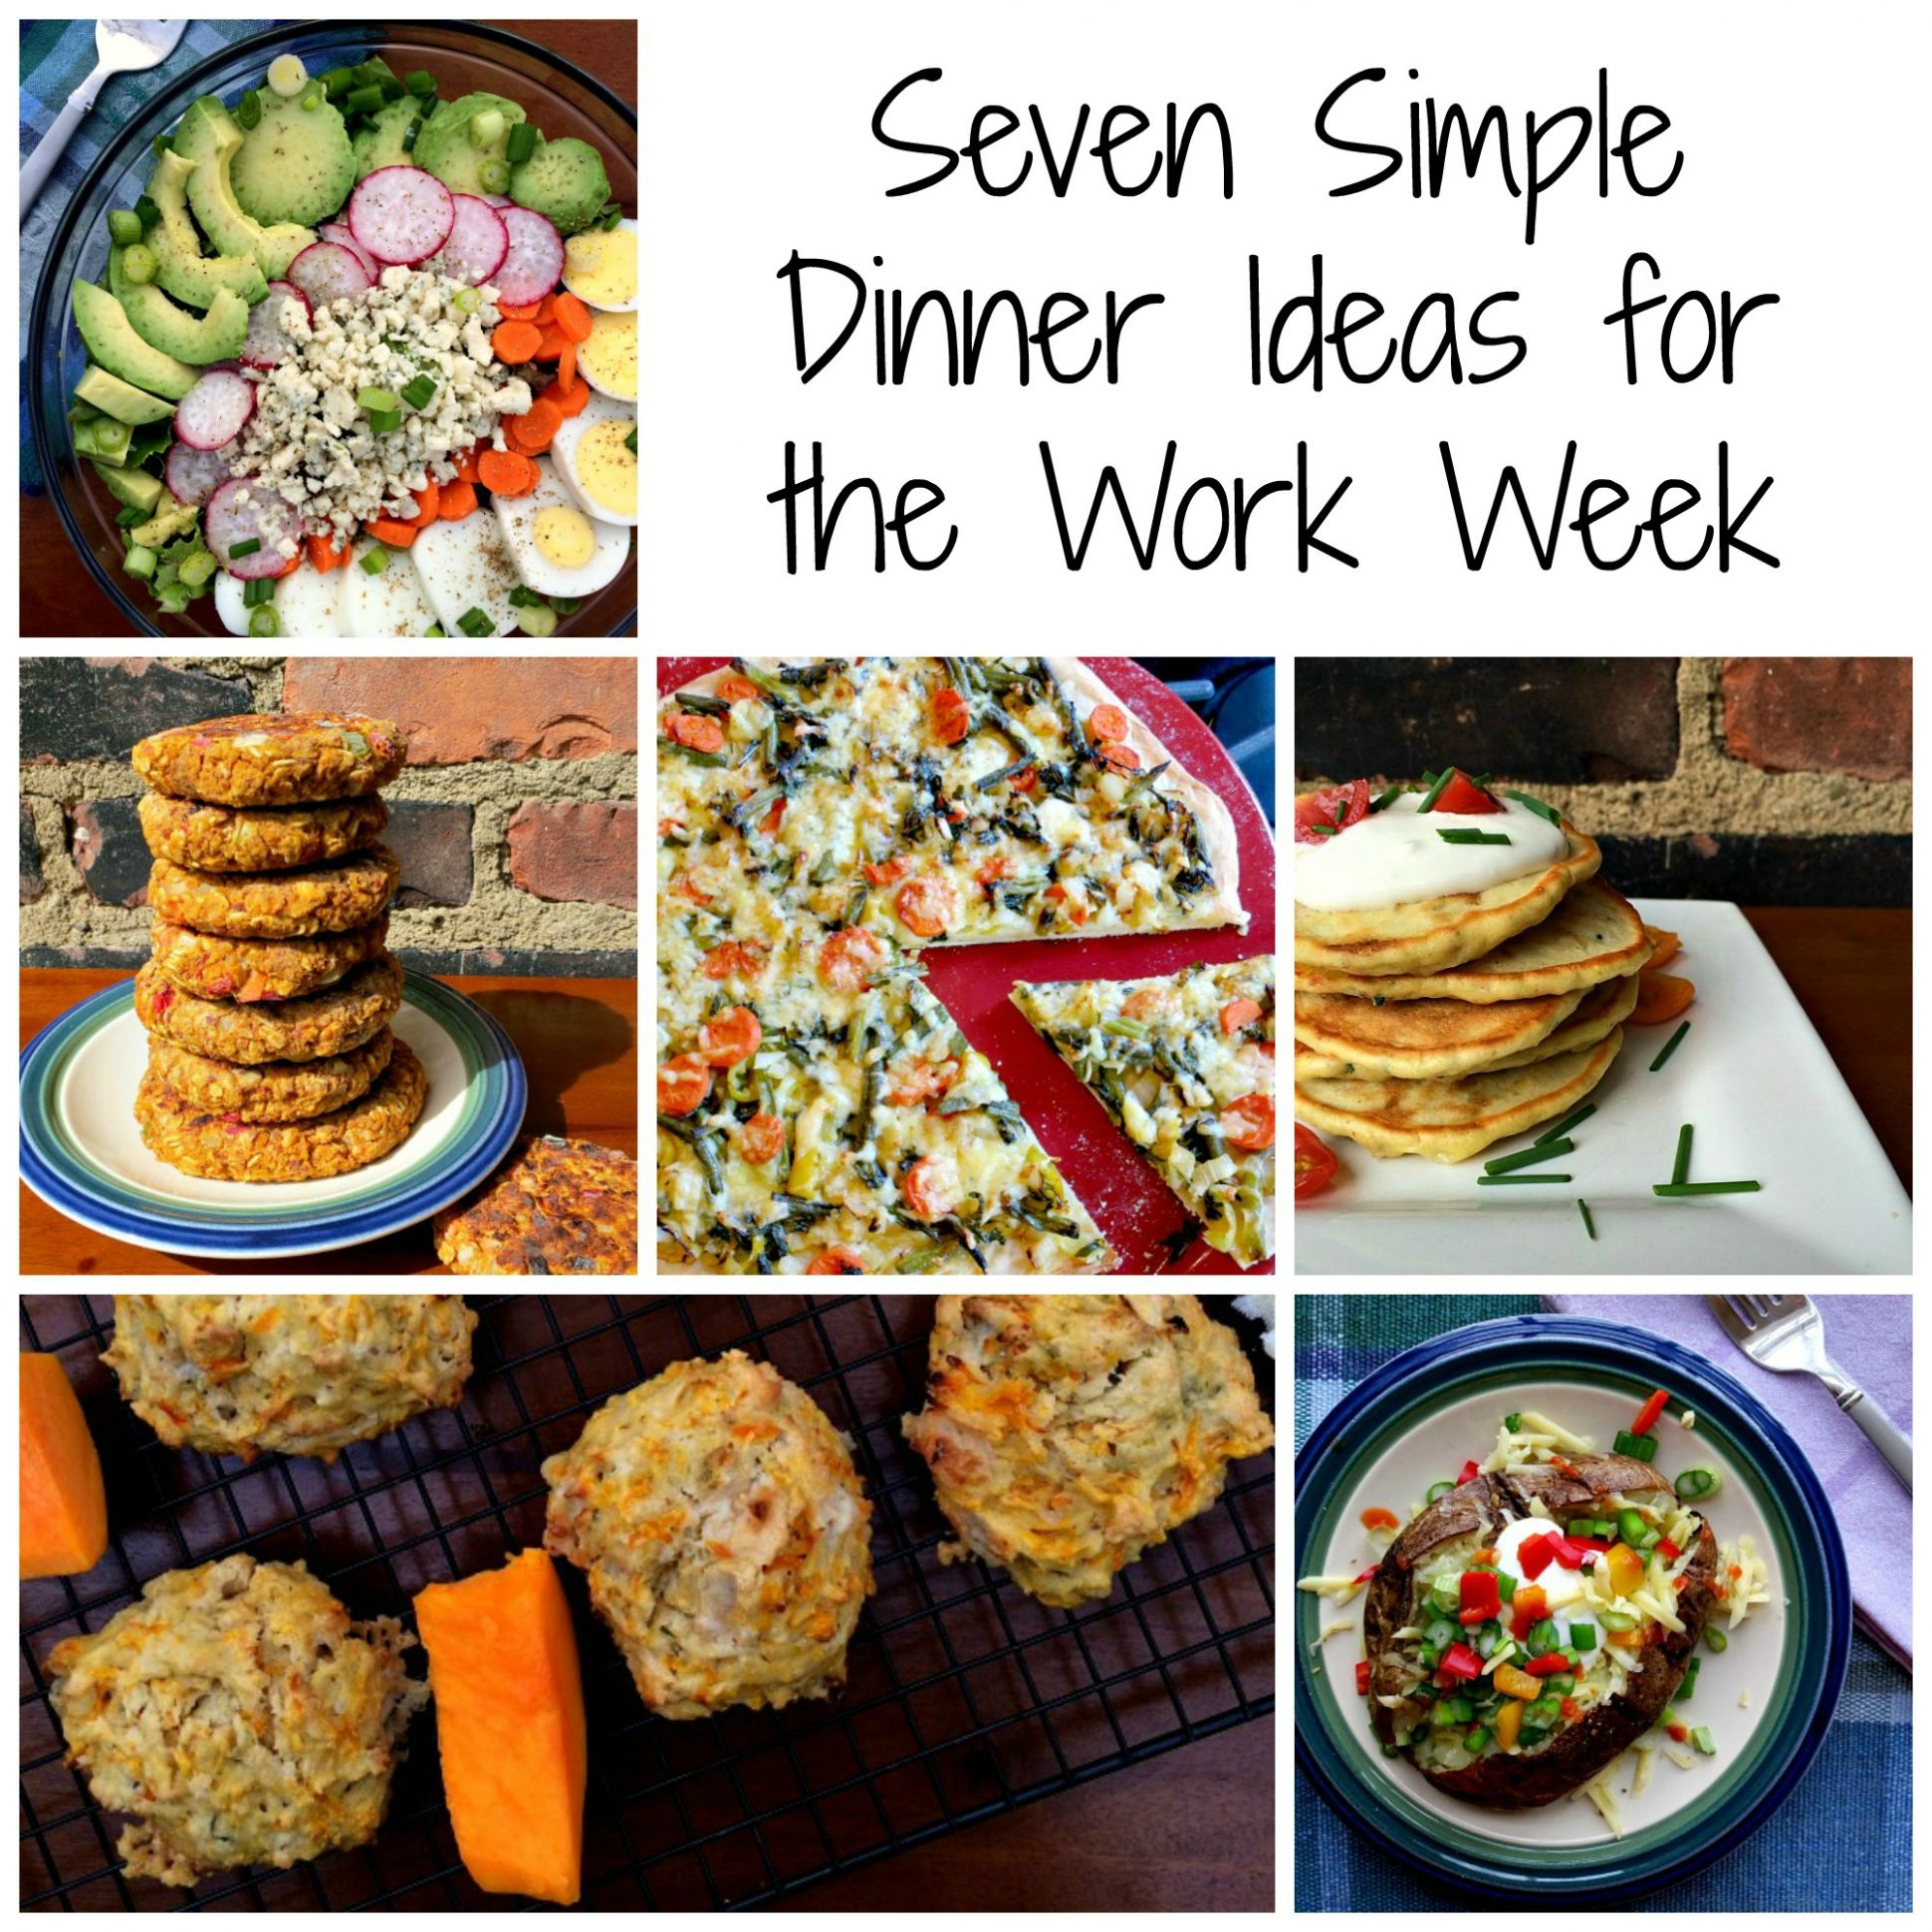 Seven Simple Dinner Ideas for the Work Week - Clean Eats, Fast Feets